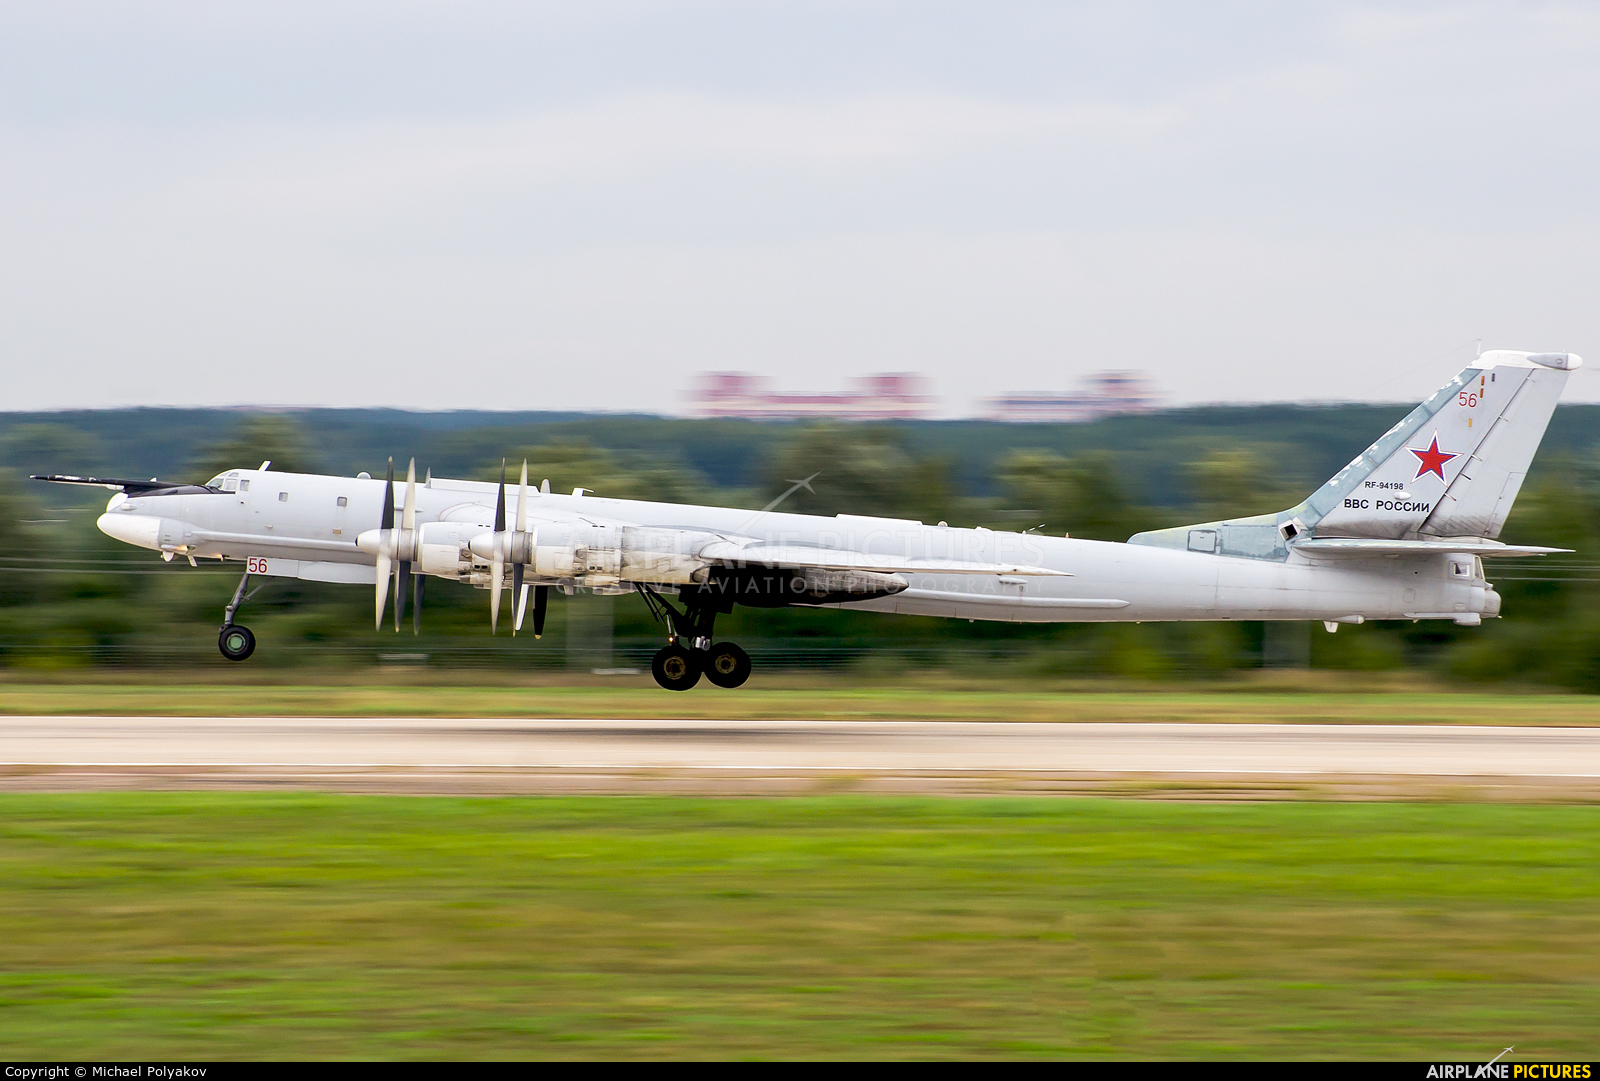 Russia - Air Force RF-94196 aircraft at Ramenskoye - Zhukovsky